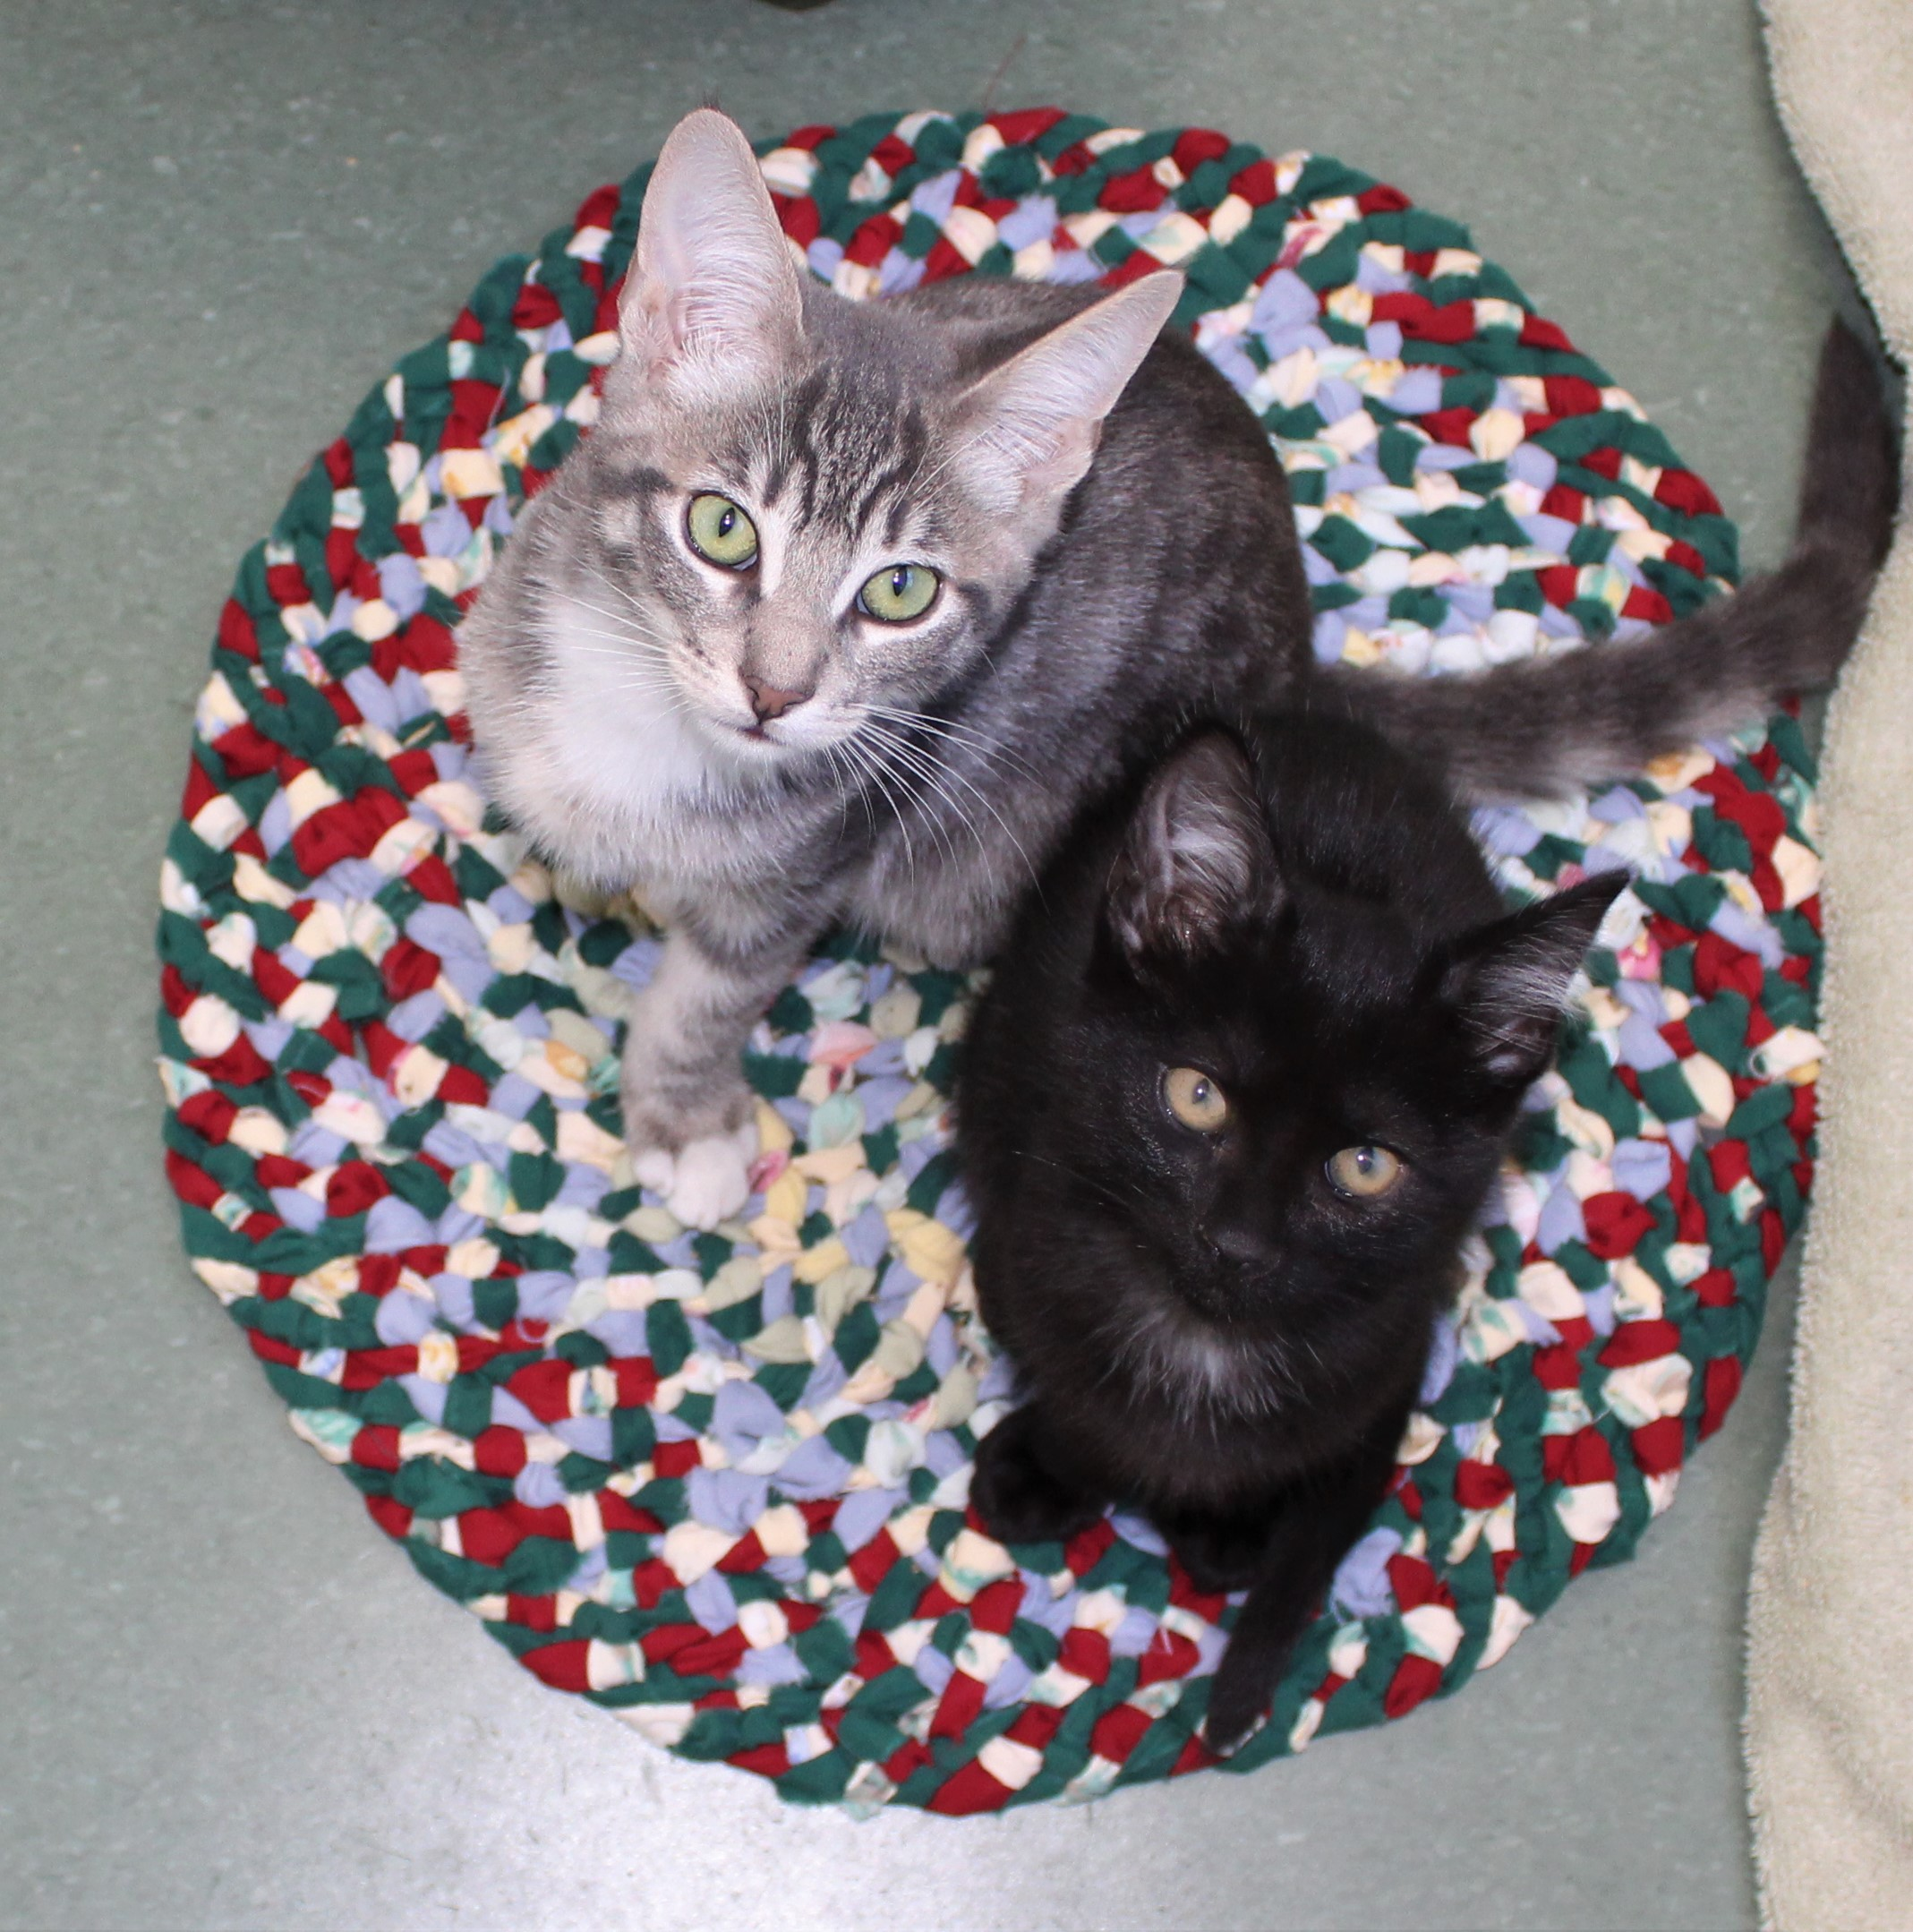 Peninsula Humane Society and SPCA's Pet of the Week: Kittens